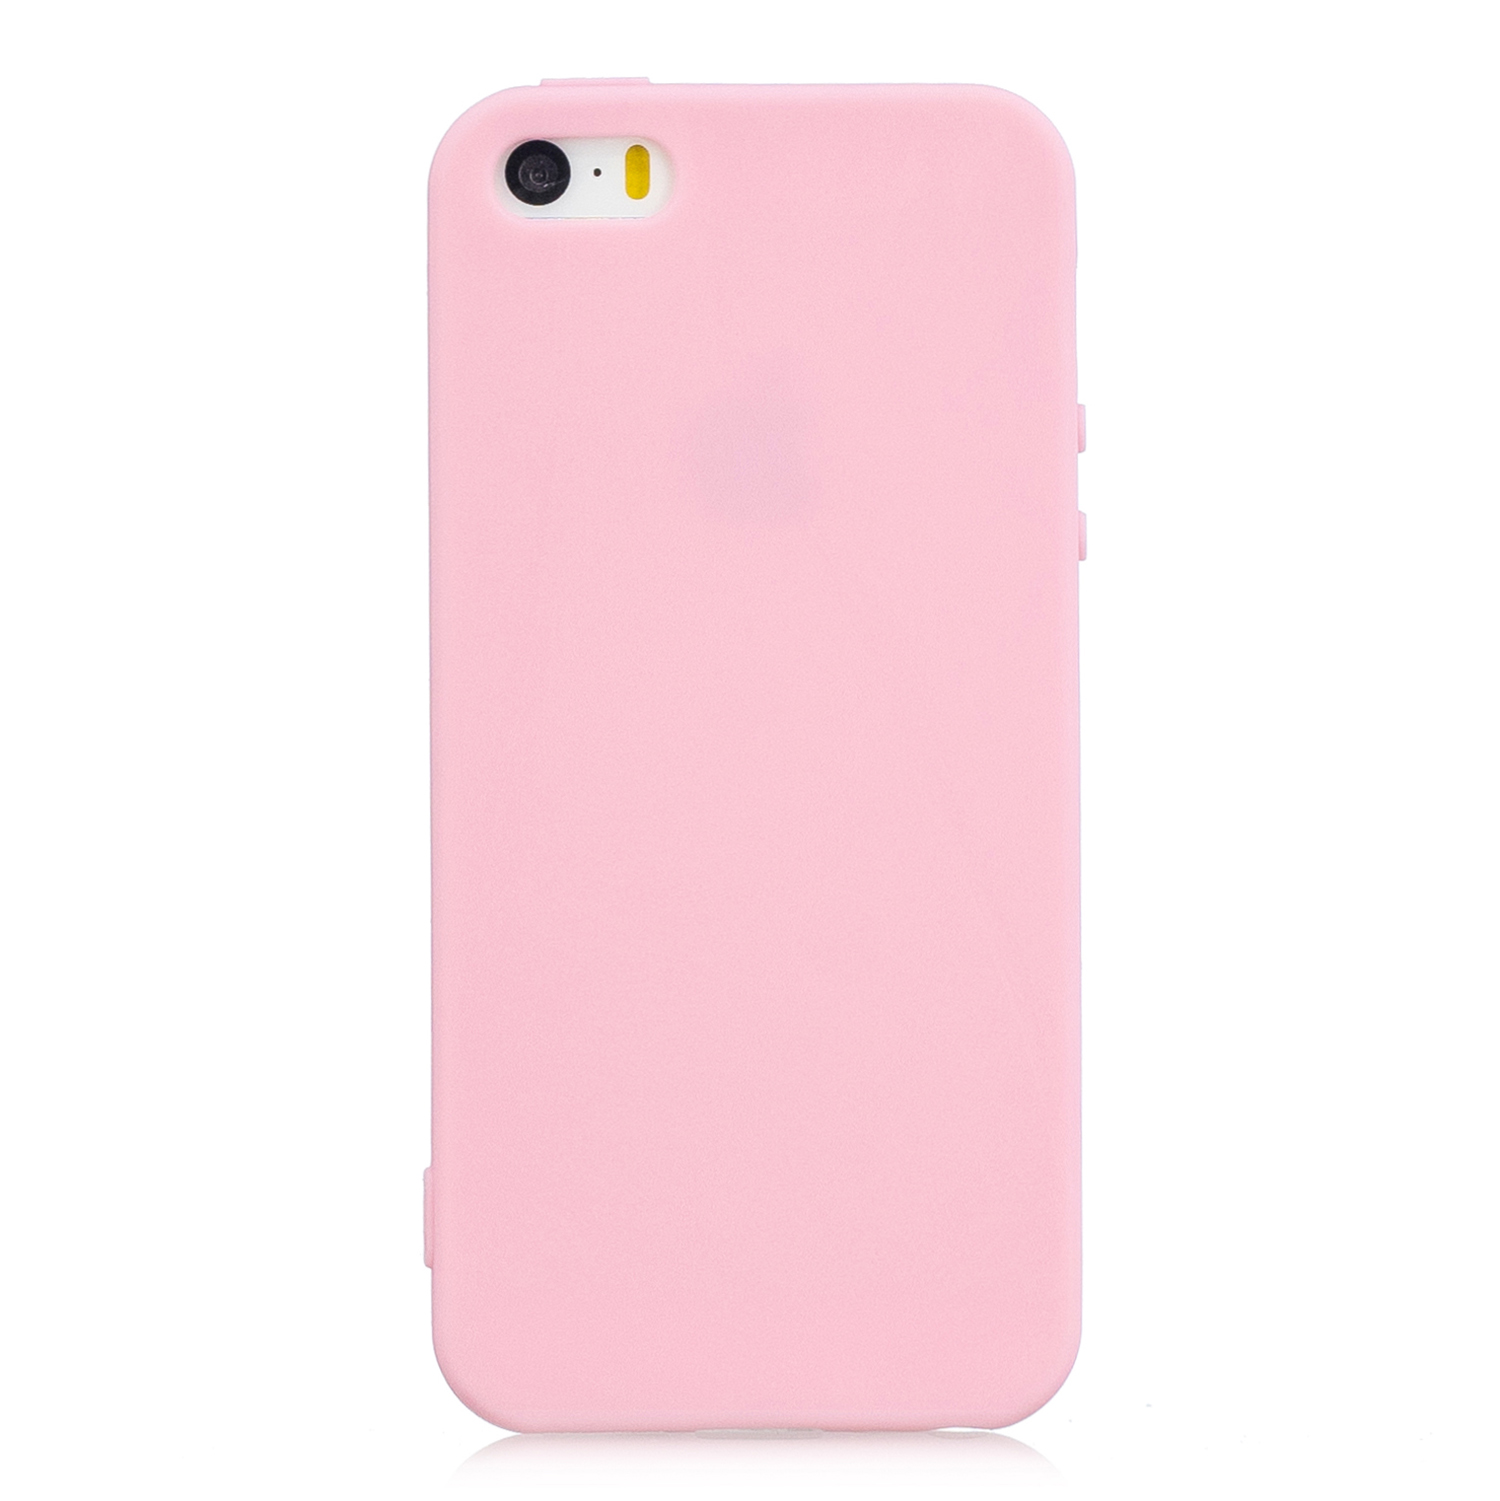 for iPhone 5/5S/SE Lovely Candy Color Matte TPU Anti-scratch Non-slip Protective Cover Back Case dark pink